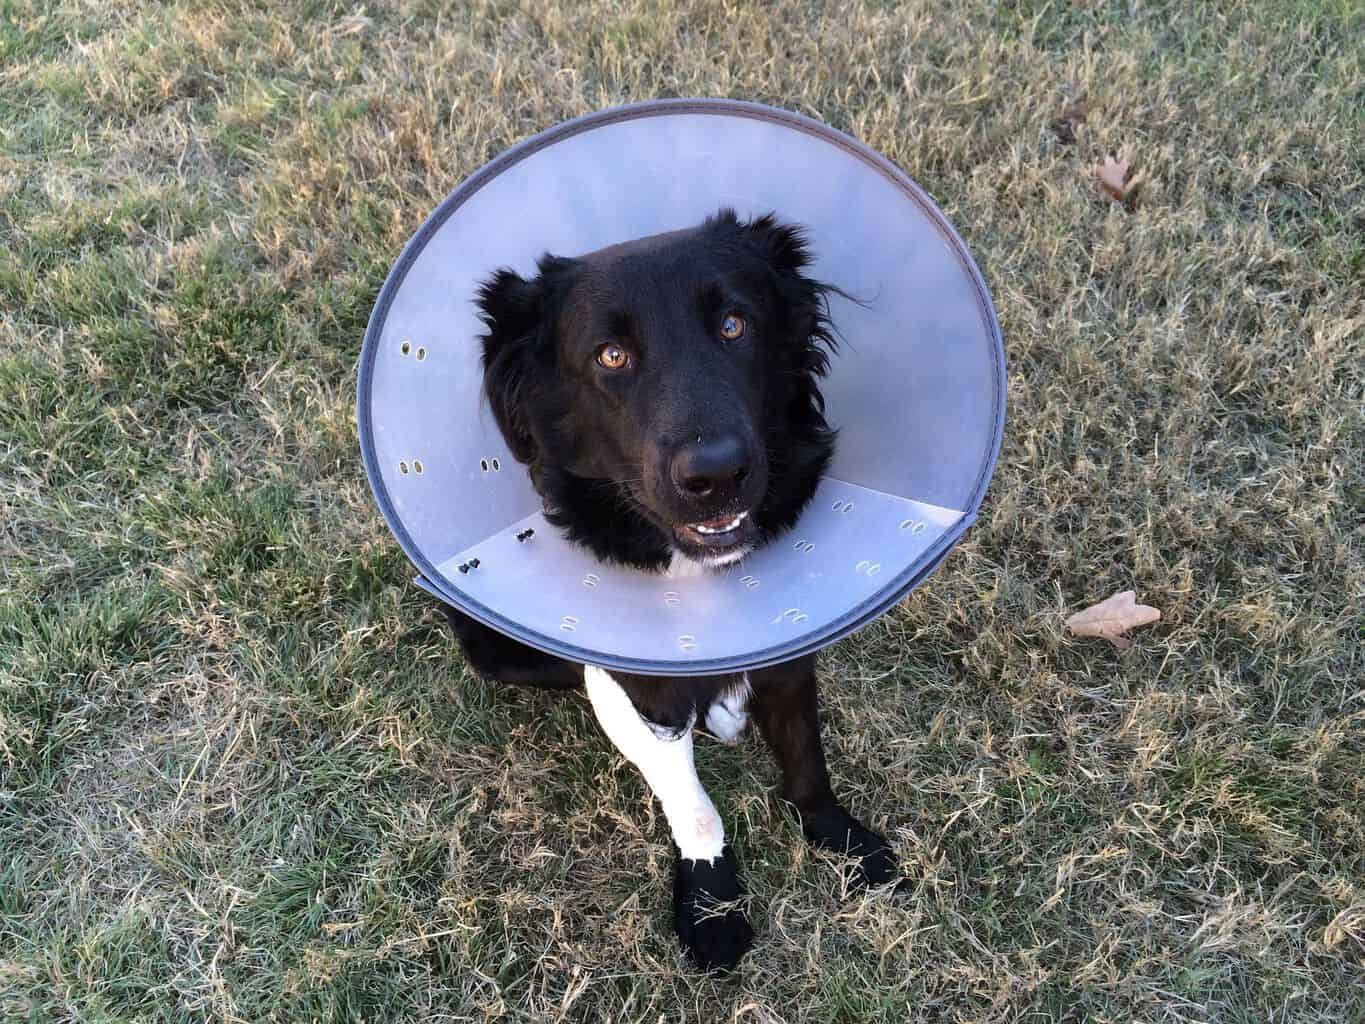 After Spay Surgery Dogs Will Need To Rest Recover And Have Their Wounds Looked After Learn More On How To Care For Do In 2020 Cat Illnesses Dog Insurance Sick Pets